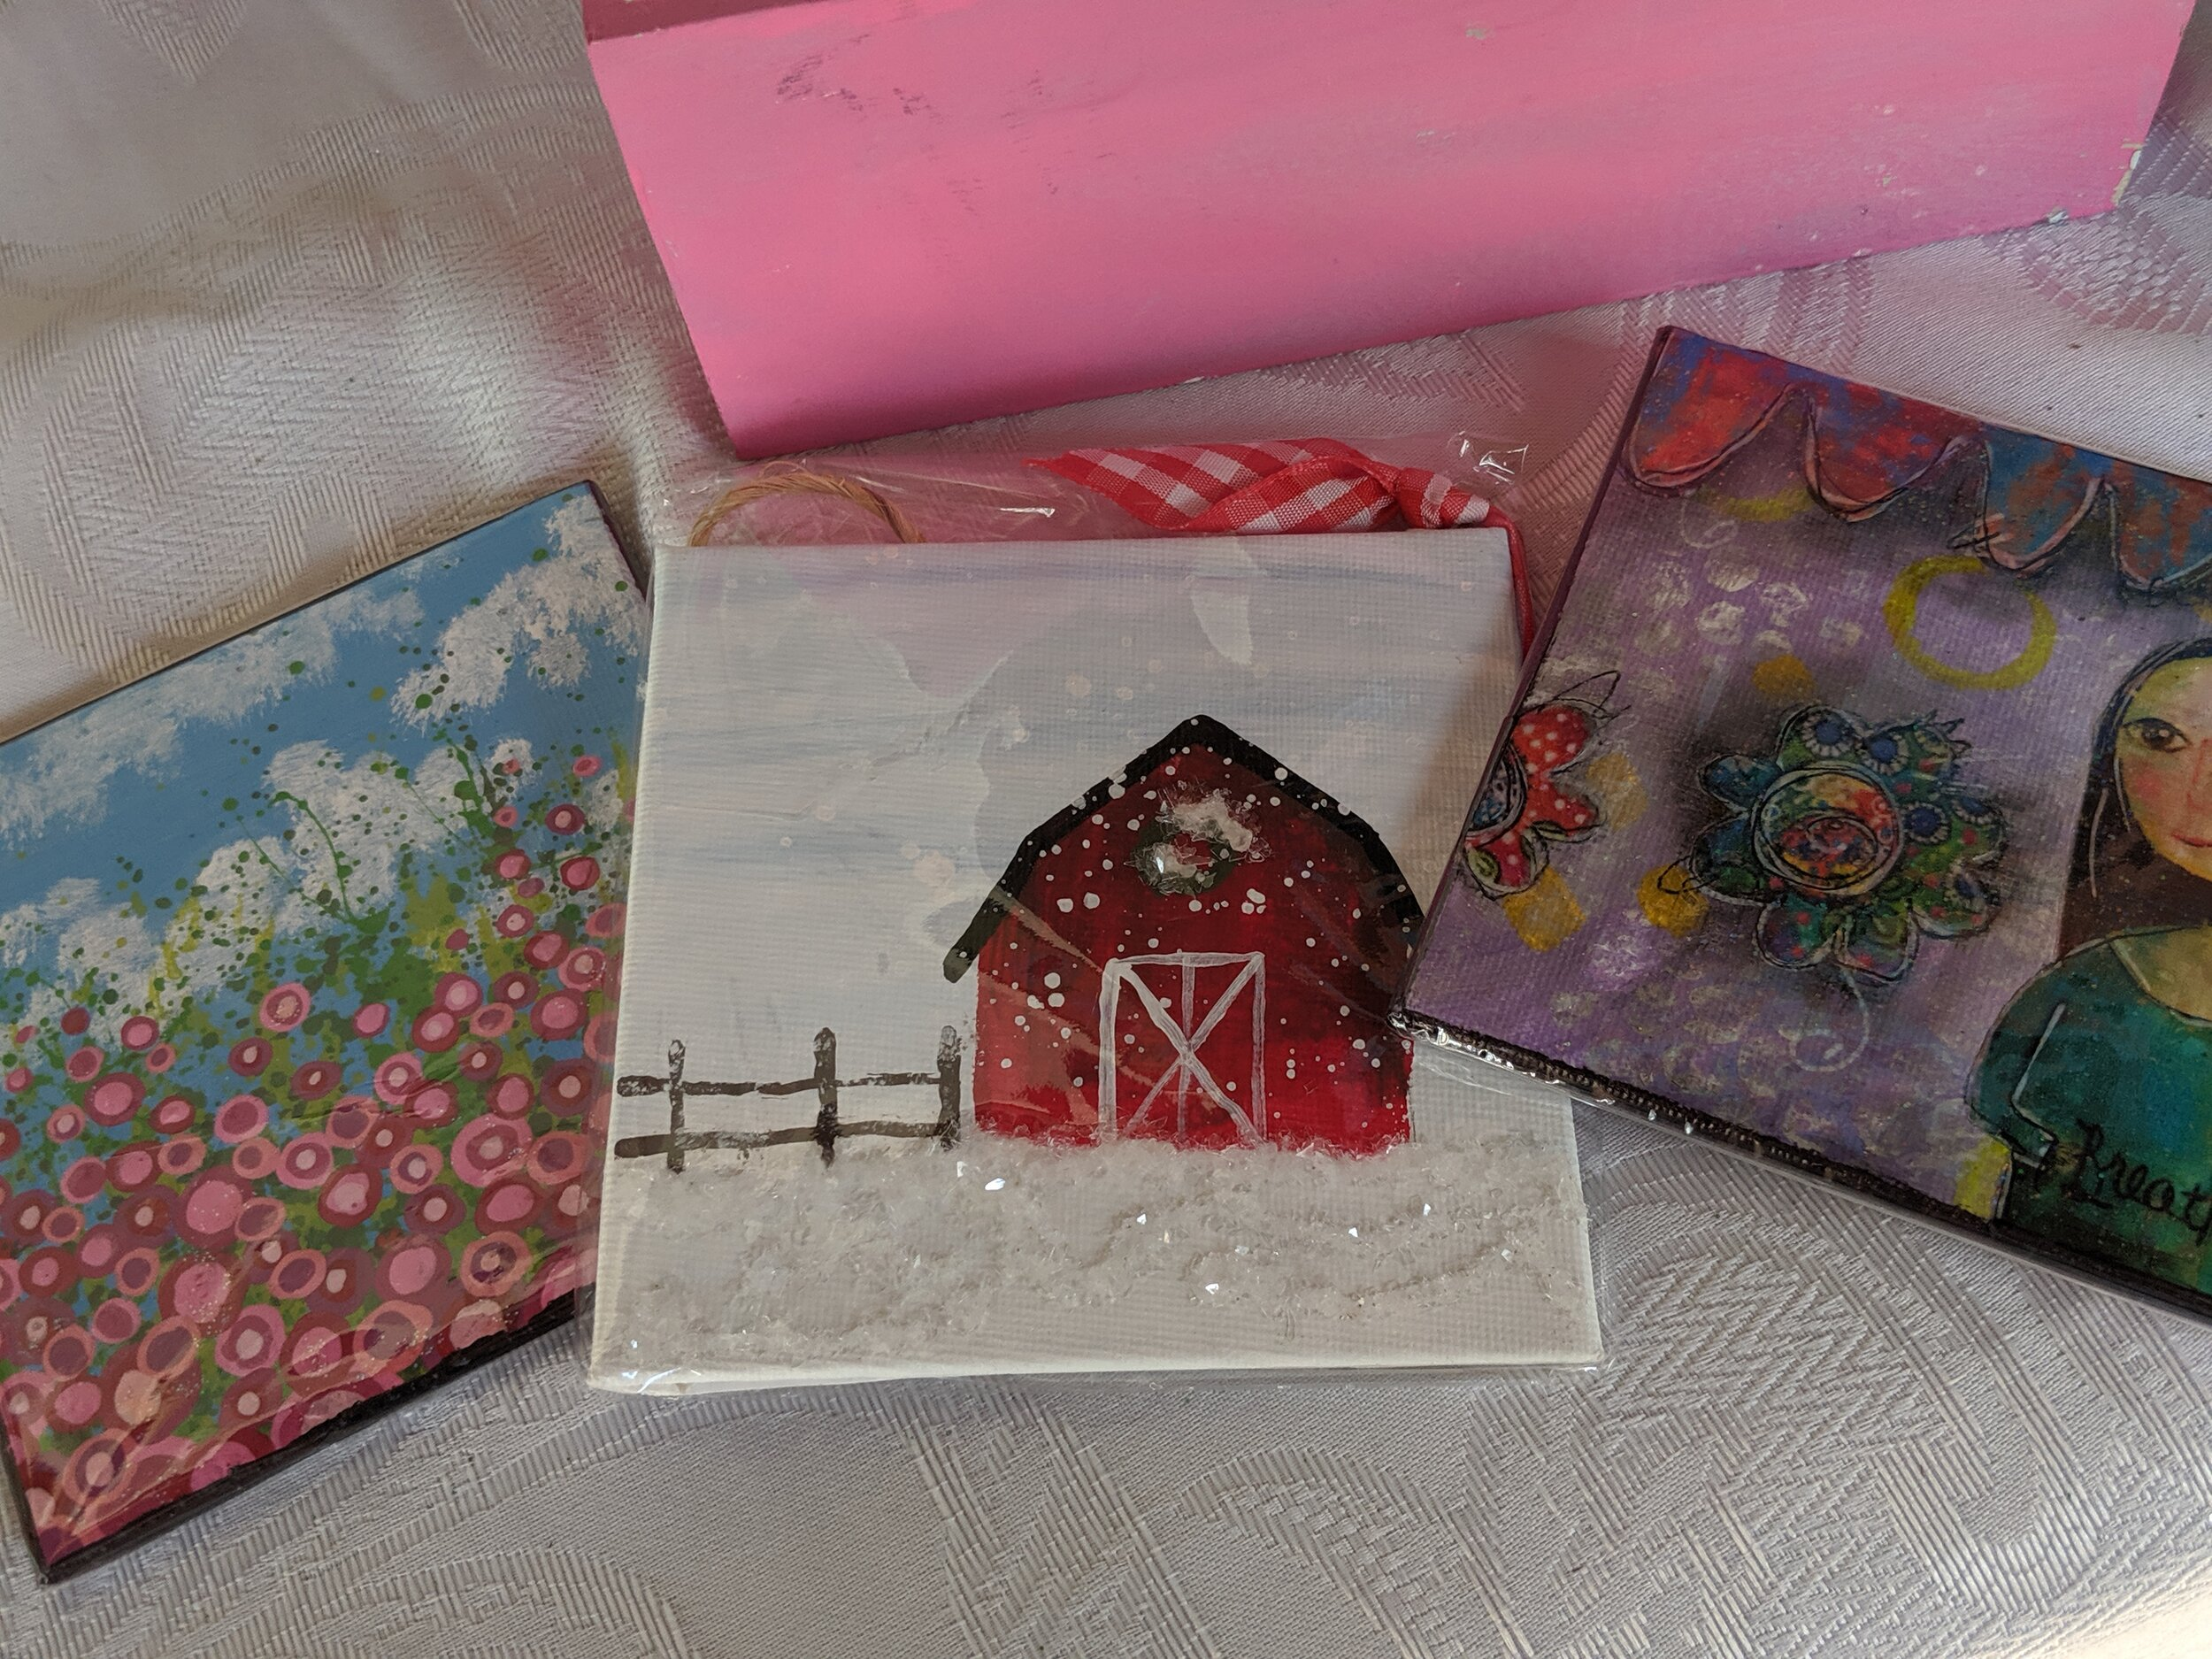 Small paintings and little ornaments are just a few of the pieces that went to a new home today!